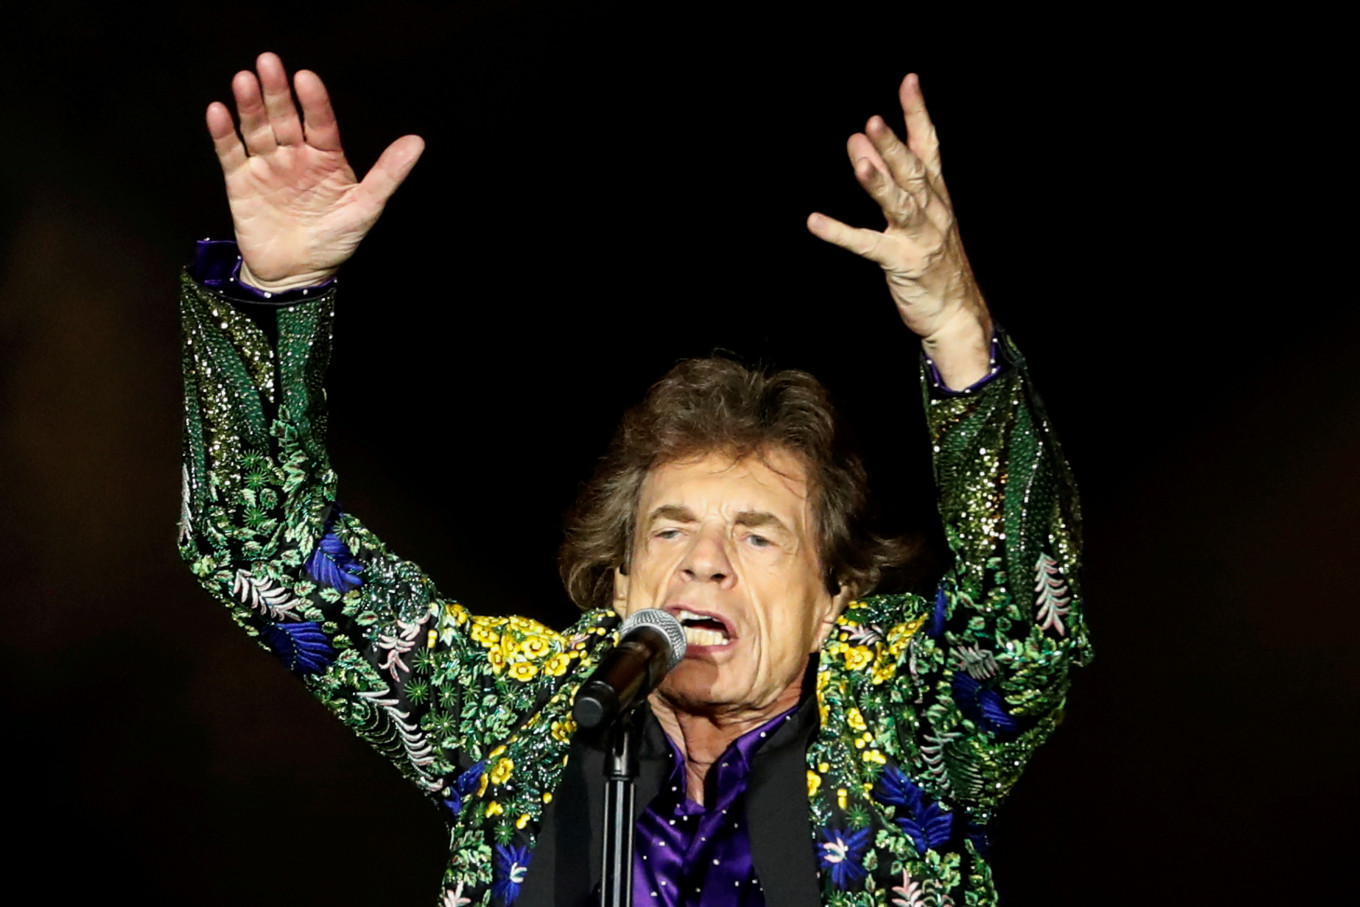 Mick Jagger celebrates end of lockdown in new track 'Eazy Sleazy'